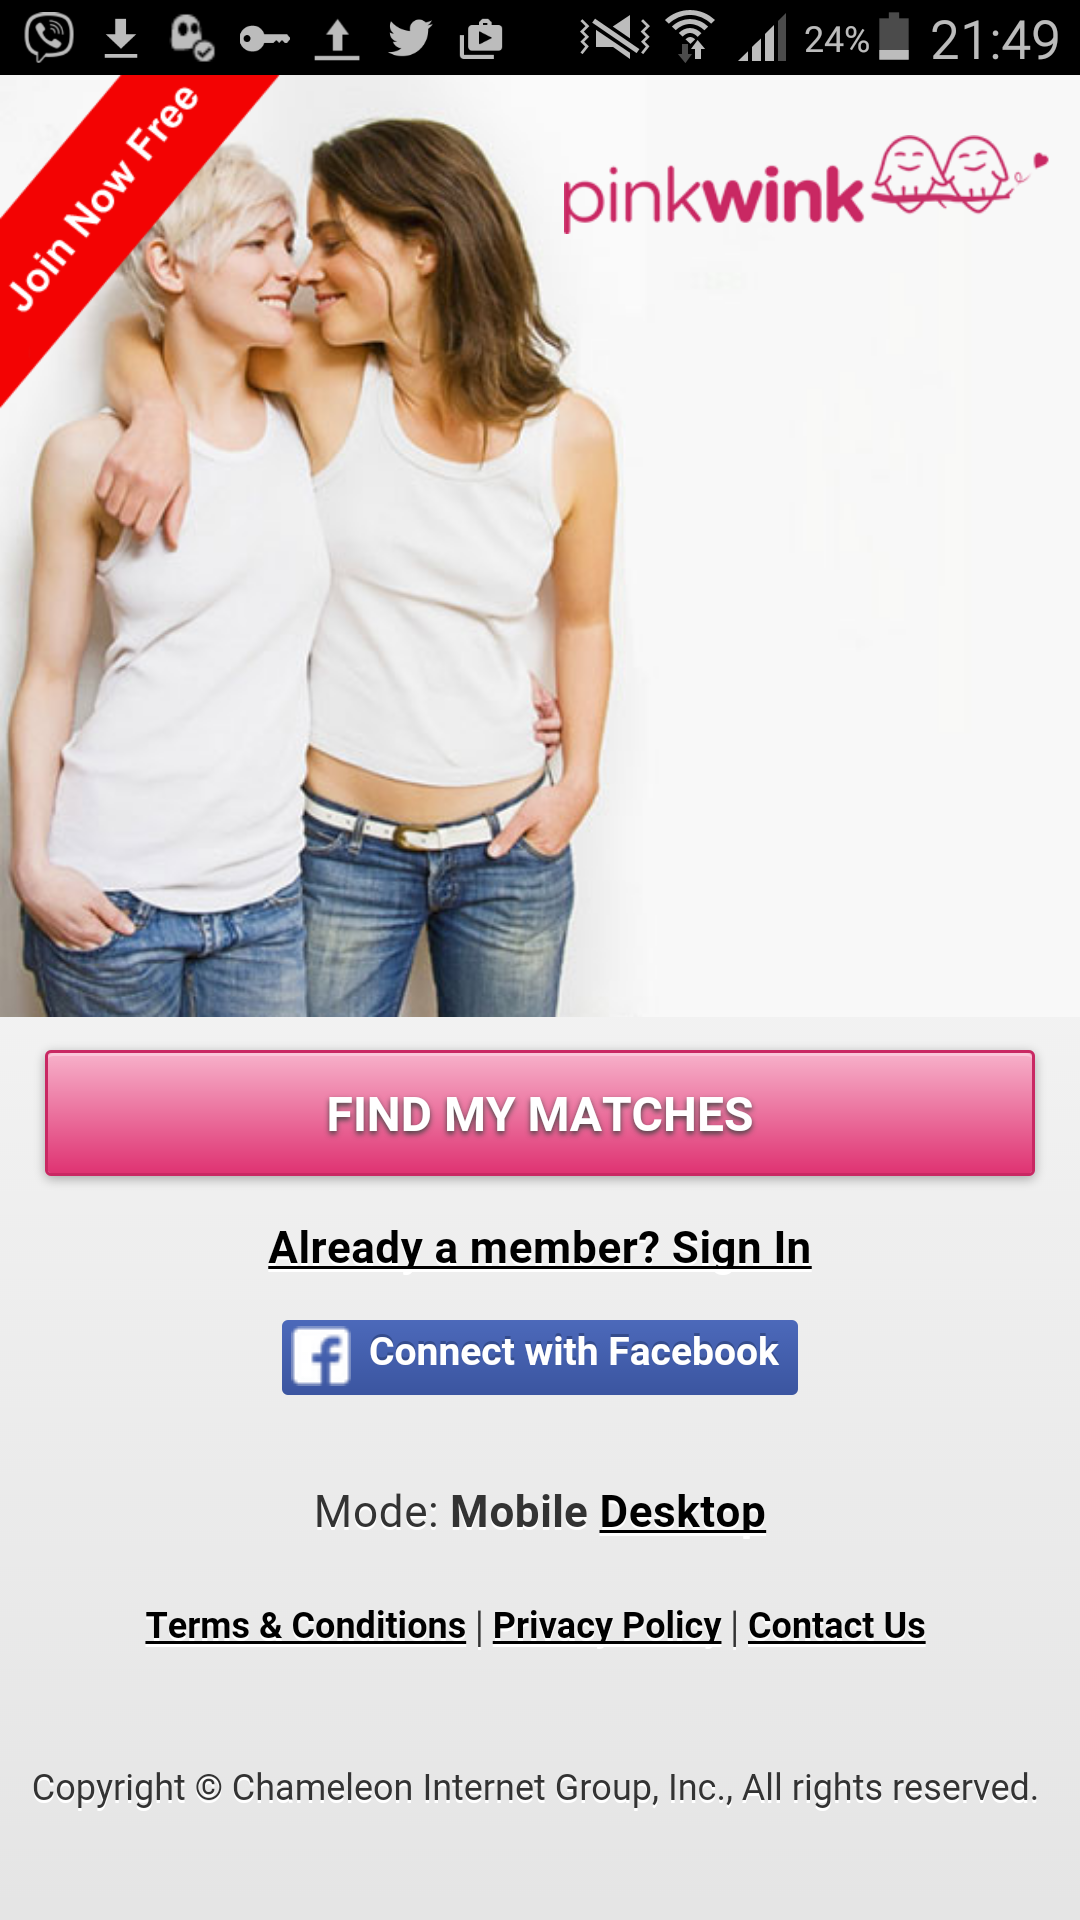 wheeless lesbian dating site Only women : lesbian dating rocketware social mature 17+ 10,190 offers in-app purchases add to wishlist install find like minded women in you area, make friends and find love only women is a brand new fully featured mobile and tablet dating app for lesbian and bisexual women.